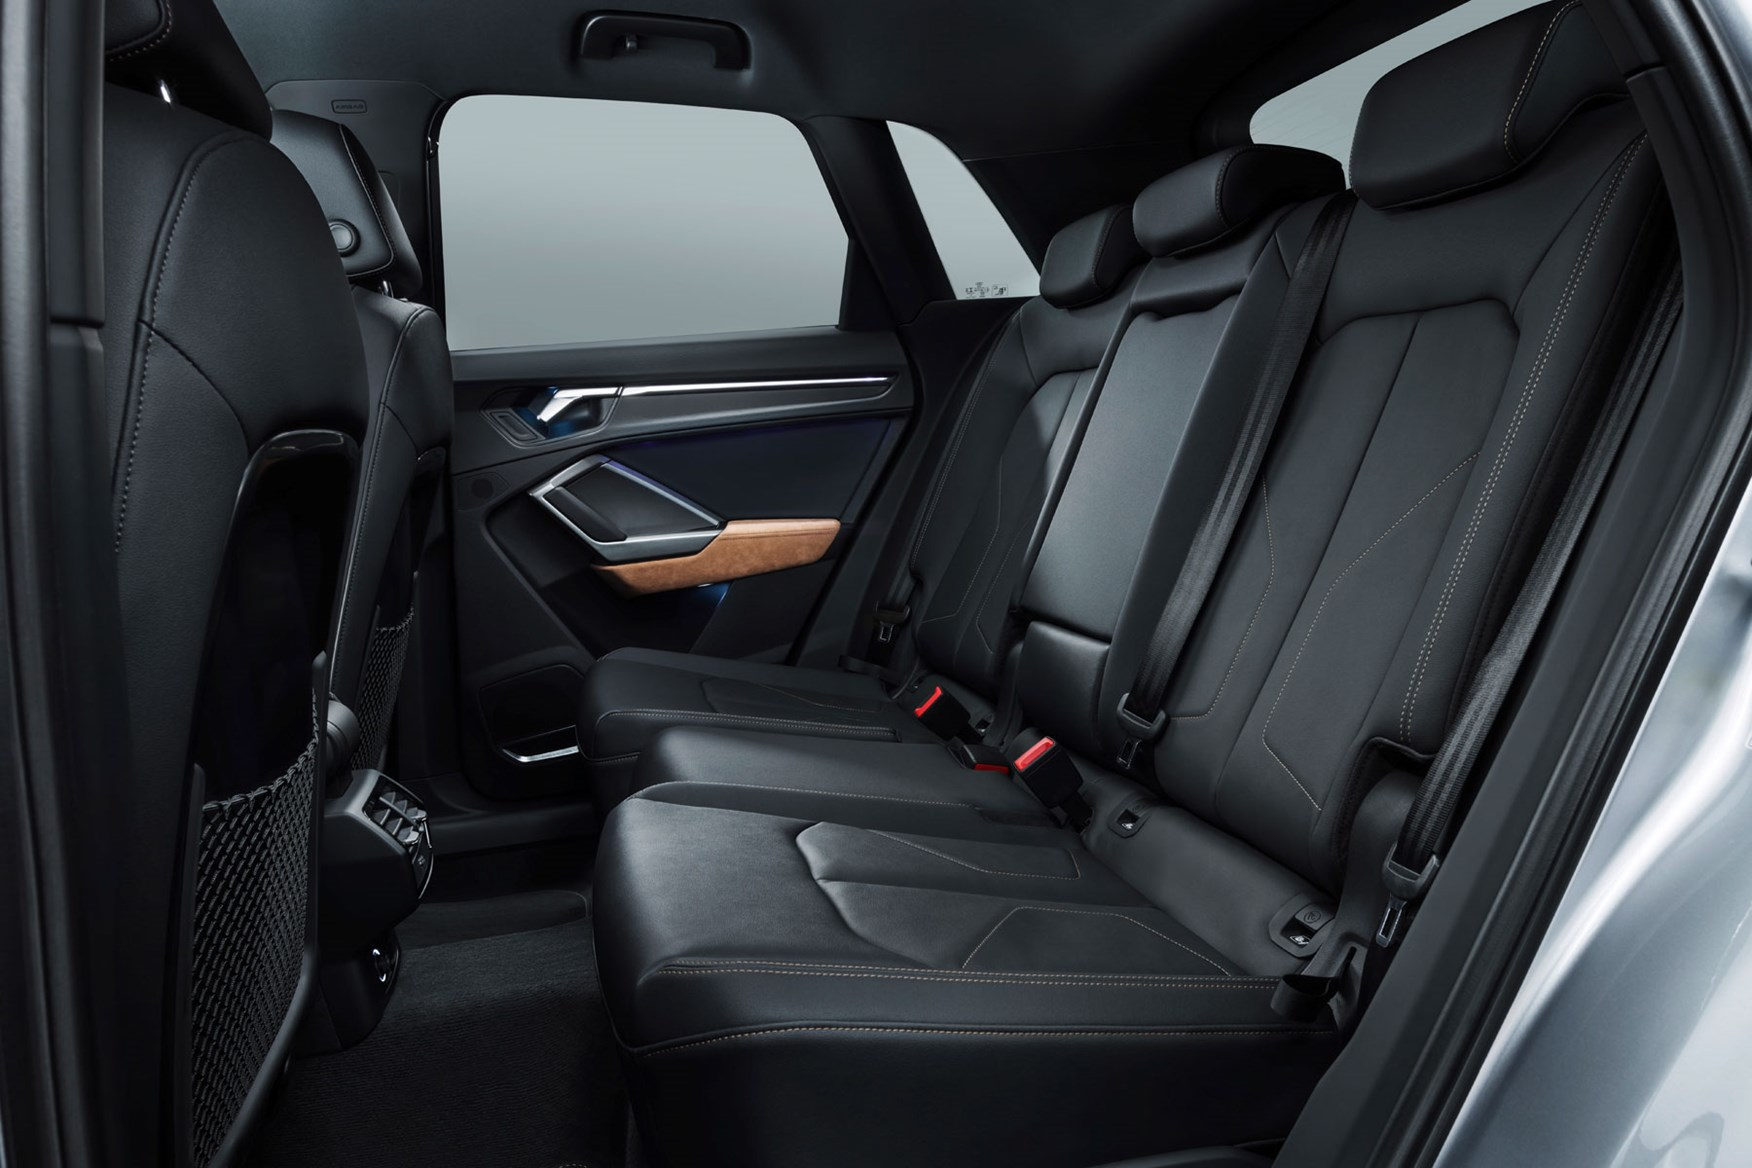 Audi Q3 has sliding rear seats for variable luggage and rear passenger space